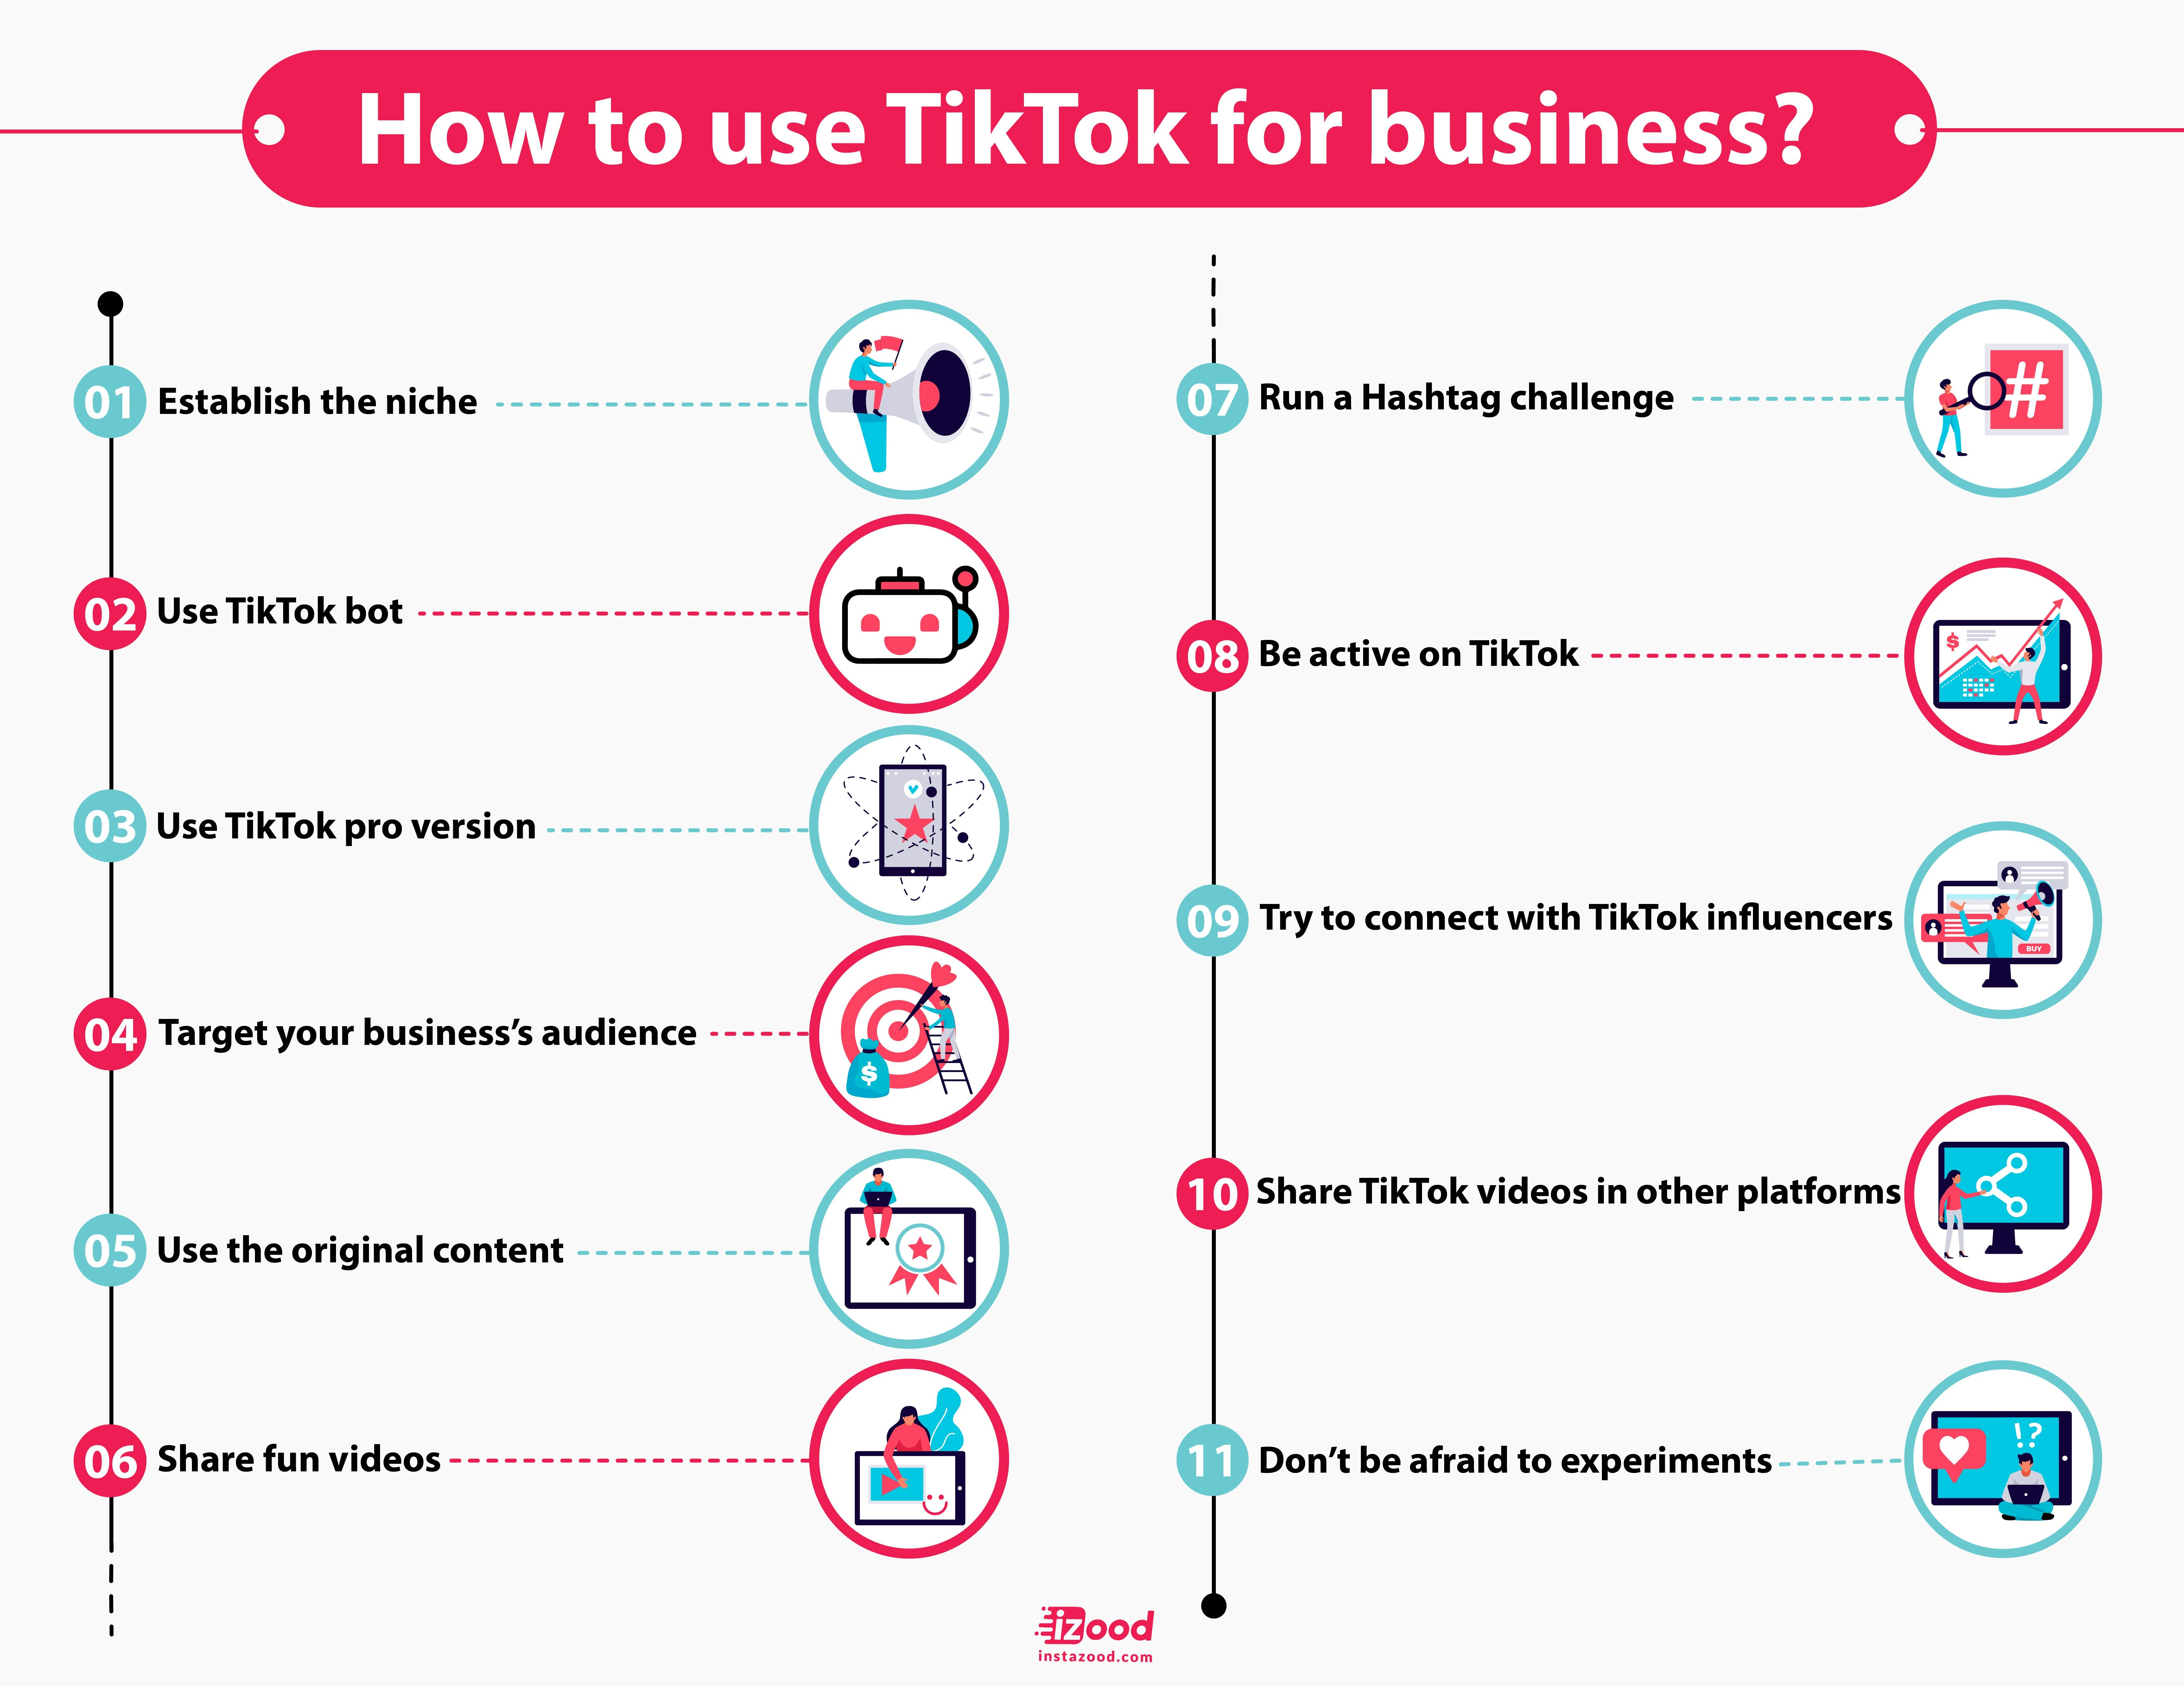 How To Use Tiktok For Business Social Marketing Strategy Instagram Infographic Business